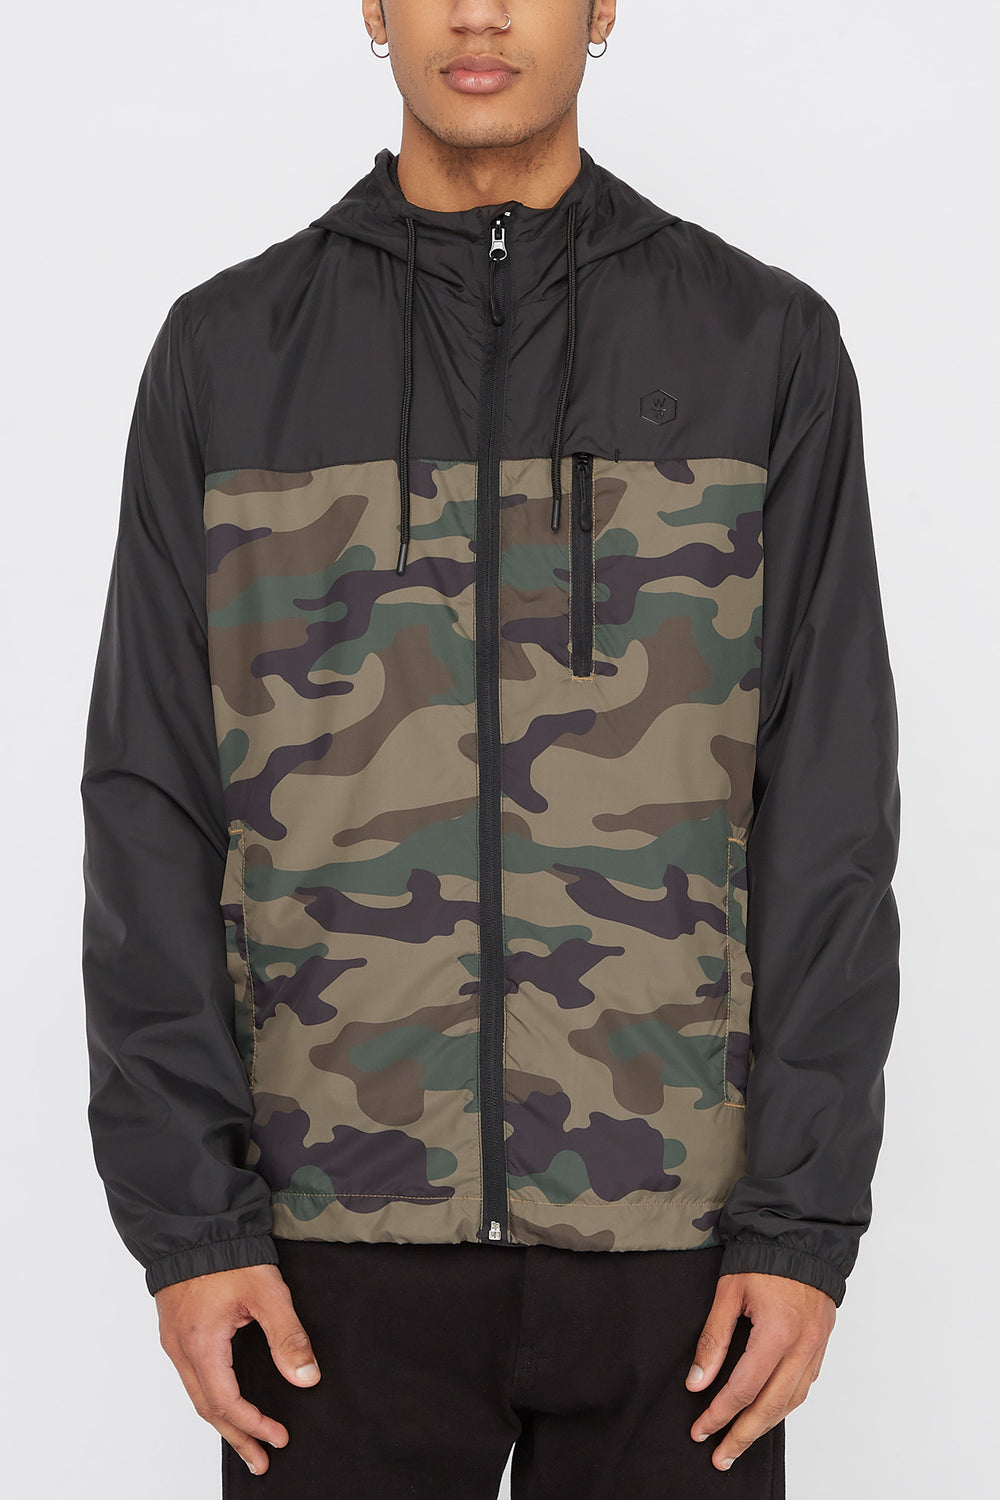 West49 Mens Camo Jacket Black